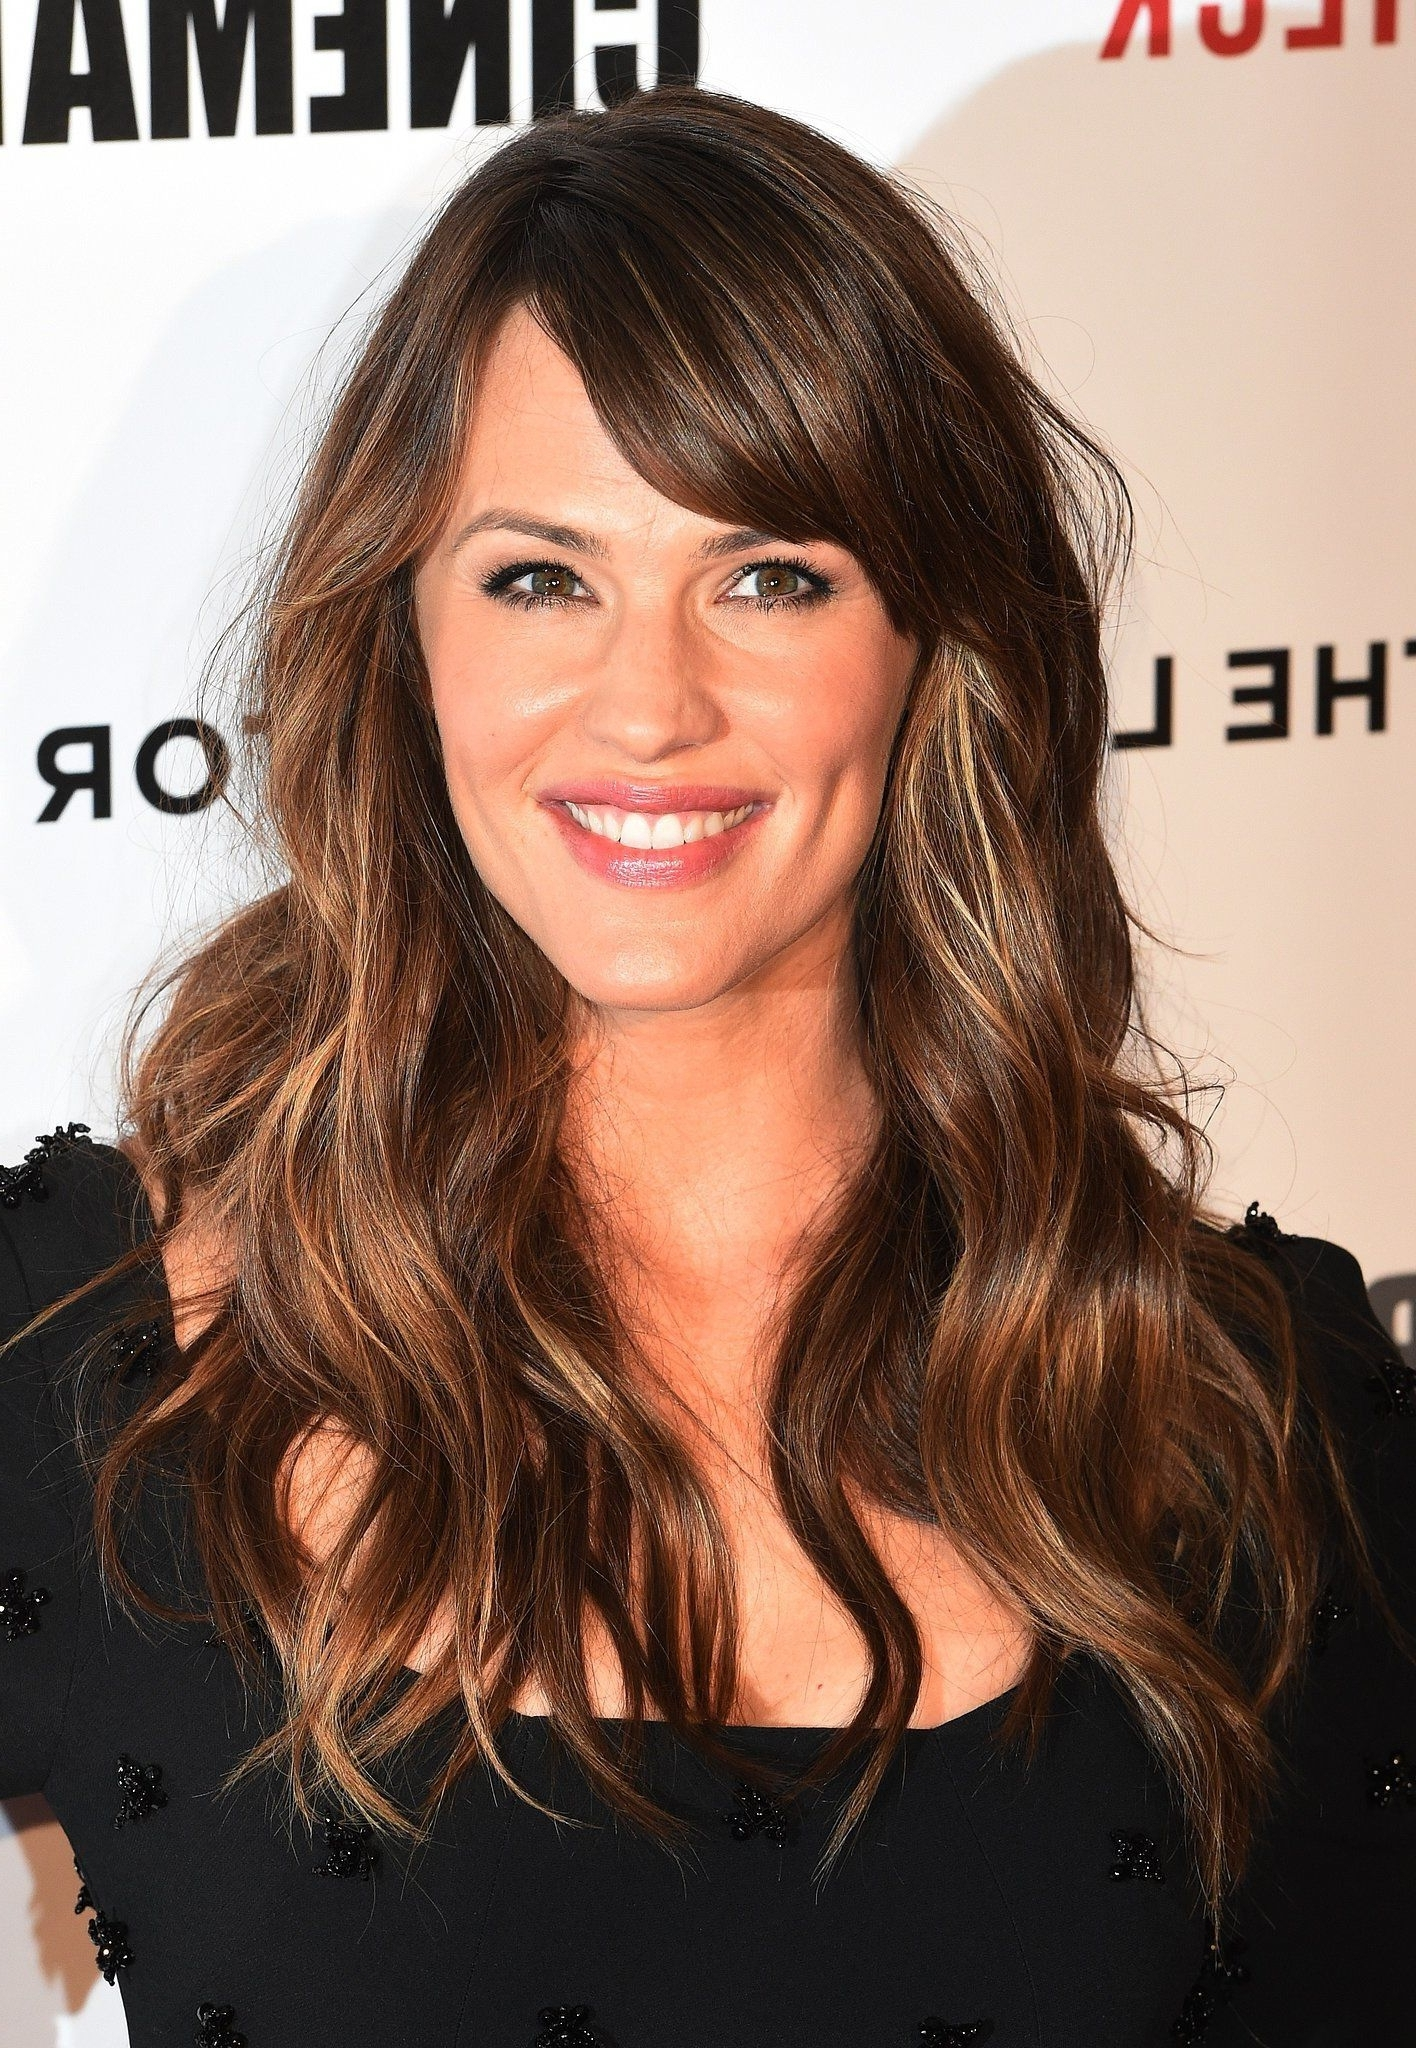 Popular Cropped Tousled Waves And Side Bangs Hairstyles Inside Jennifer Garner (View 5 of 20)